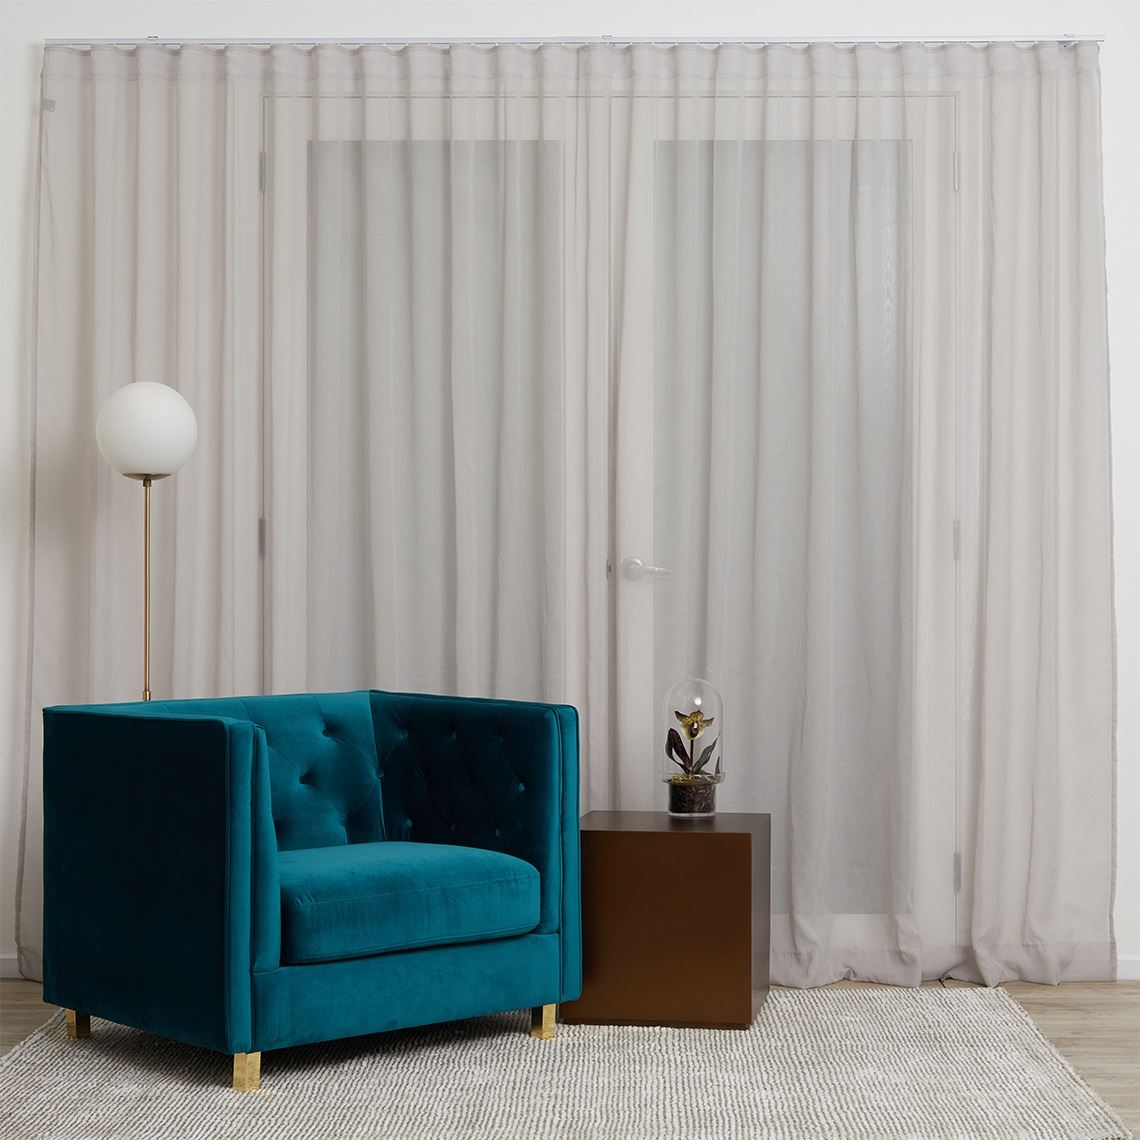 Mineral S-Fold Curtain Size W 630cm x D 1cm x H 280cm in Silver 100% Polyester Freedom by Freedom, a Curtains for sale on Style Sourcebook